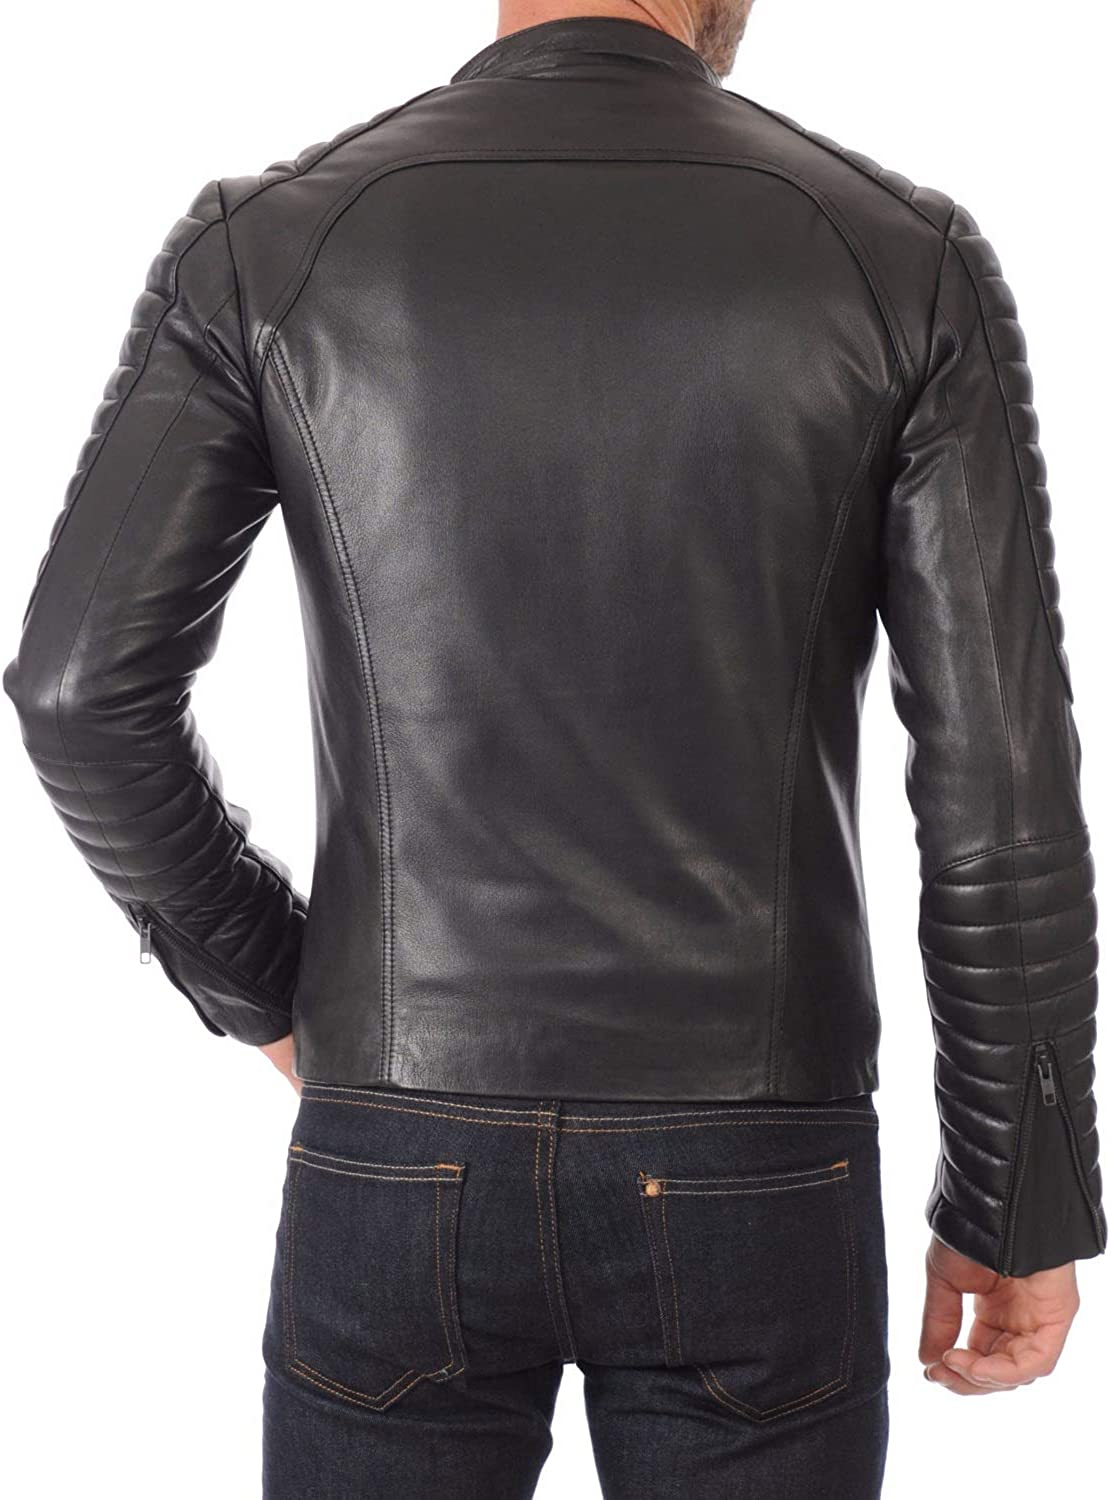 Skin2Fashion Mens Leather Jackets 424